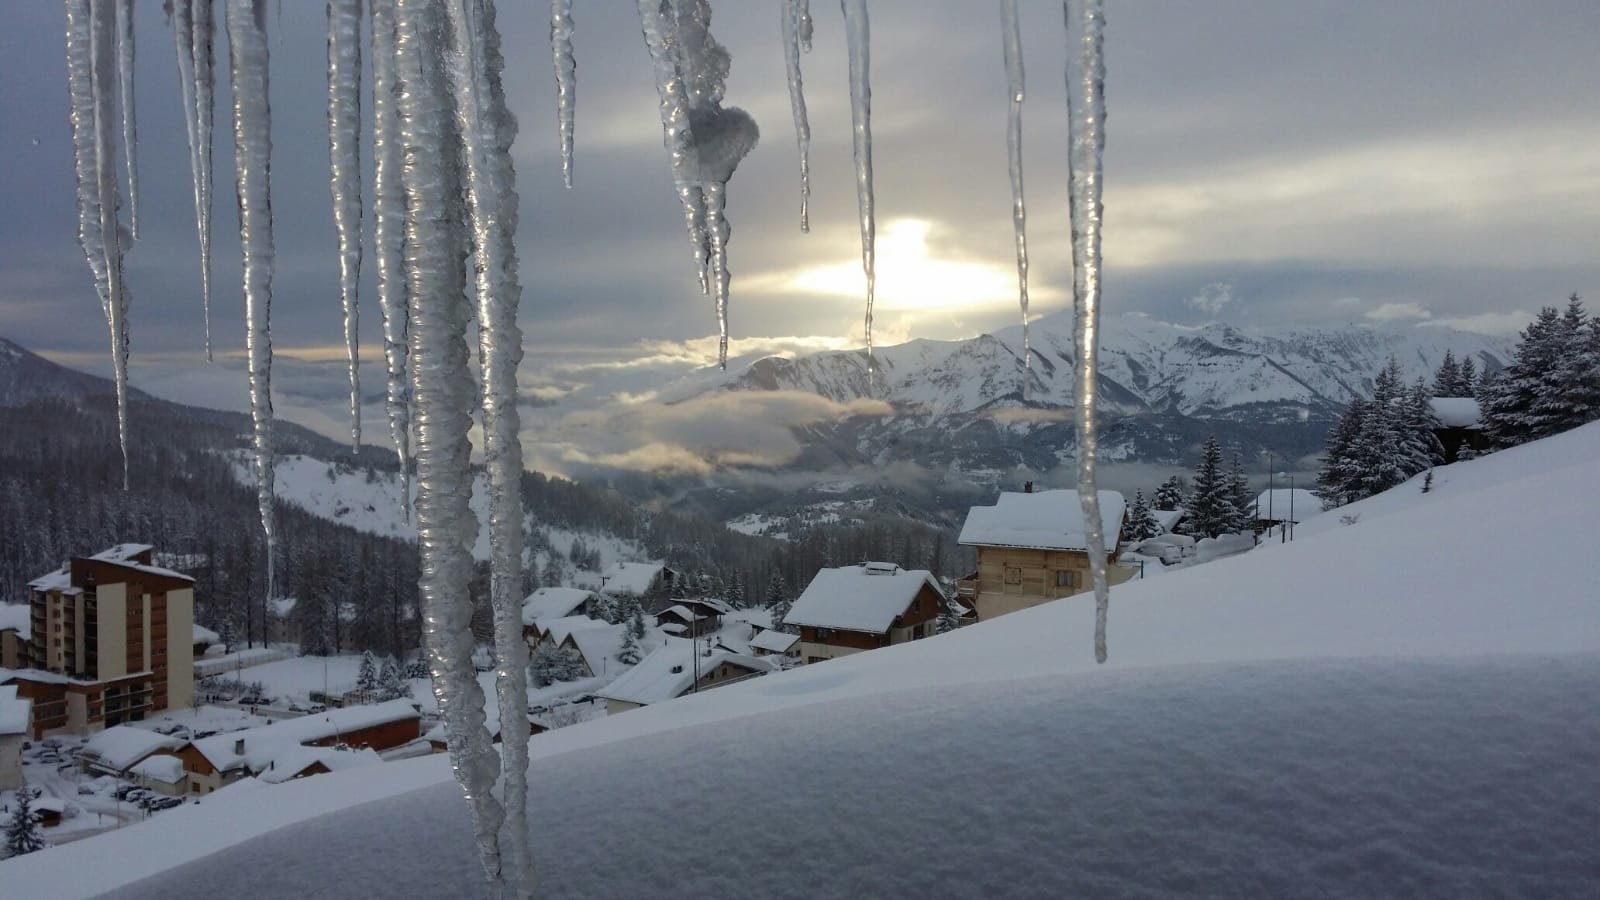 Valberg Ski Resort.  Exceptional location with panoramic views of the resort.